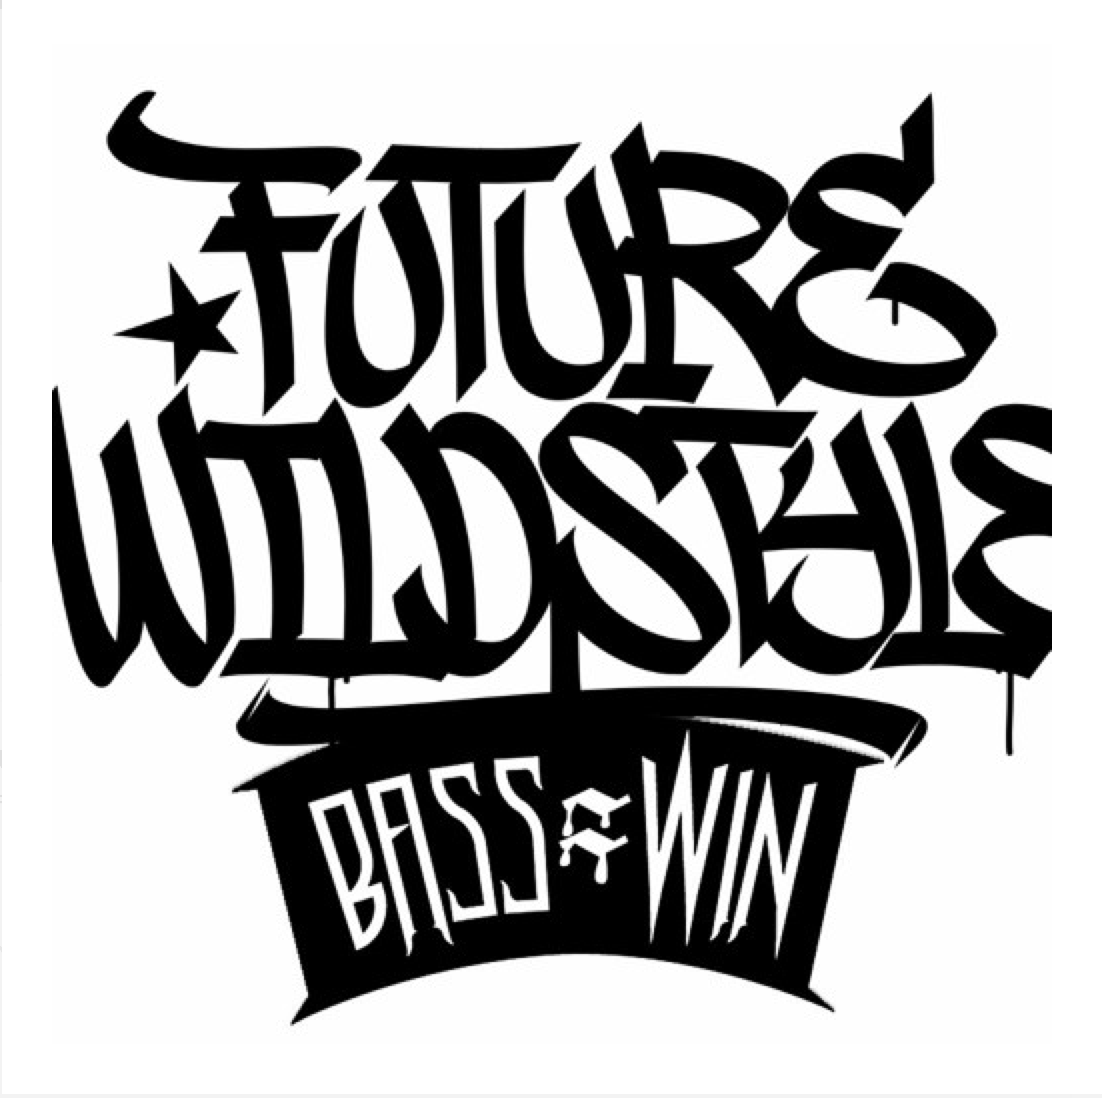 Future Wildstyle - Ultrafunkula EP [Bass=Win]